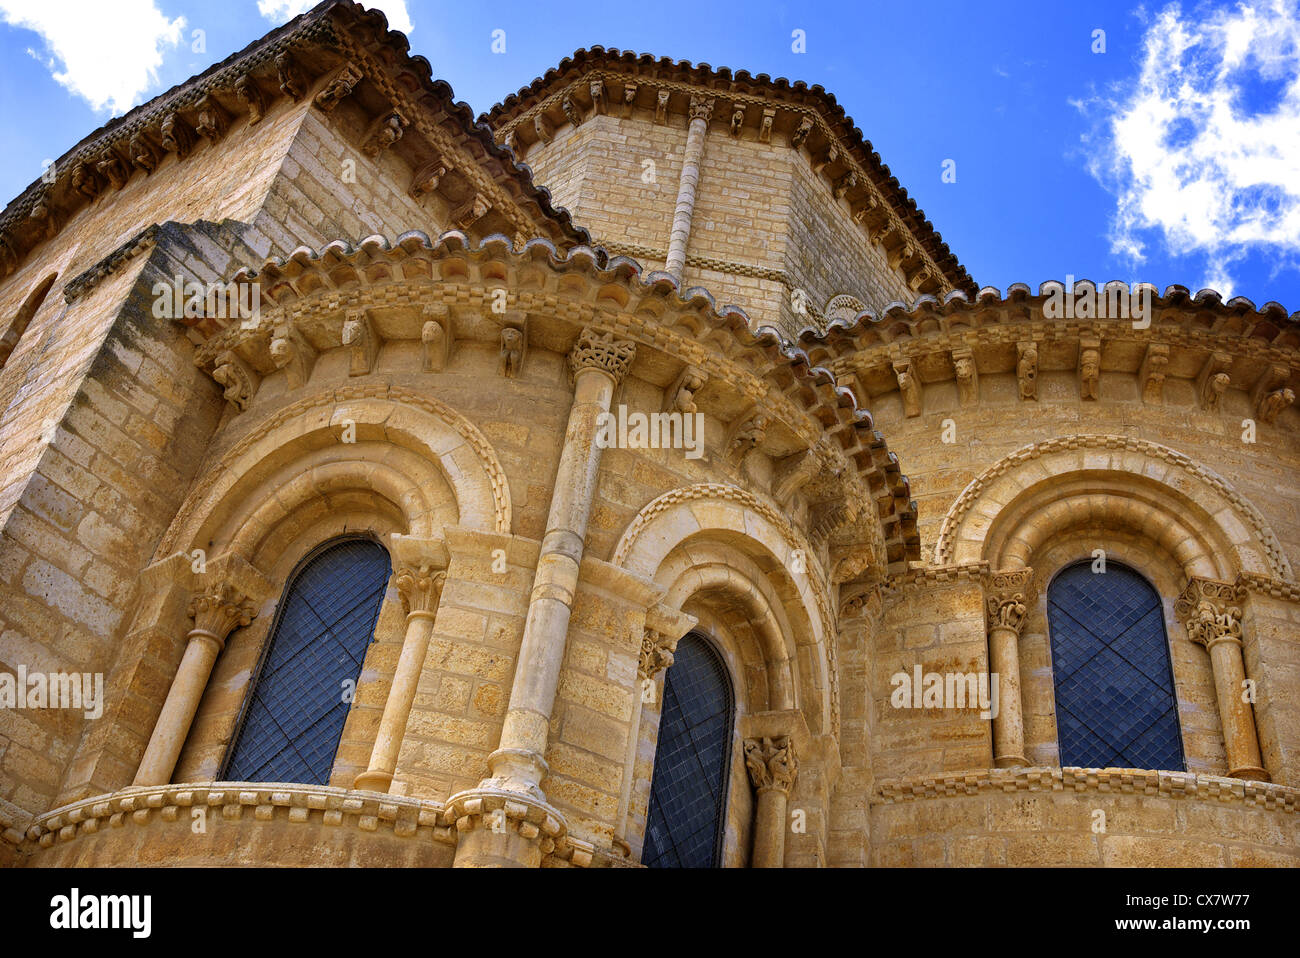 Church of Saint Martin, Iglesia de San Martin in Fromista, Spain. - Stock Image